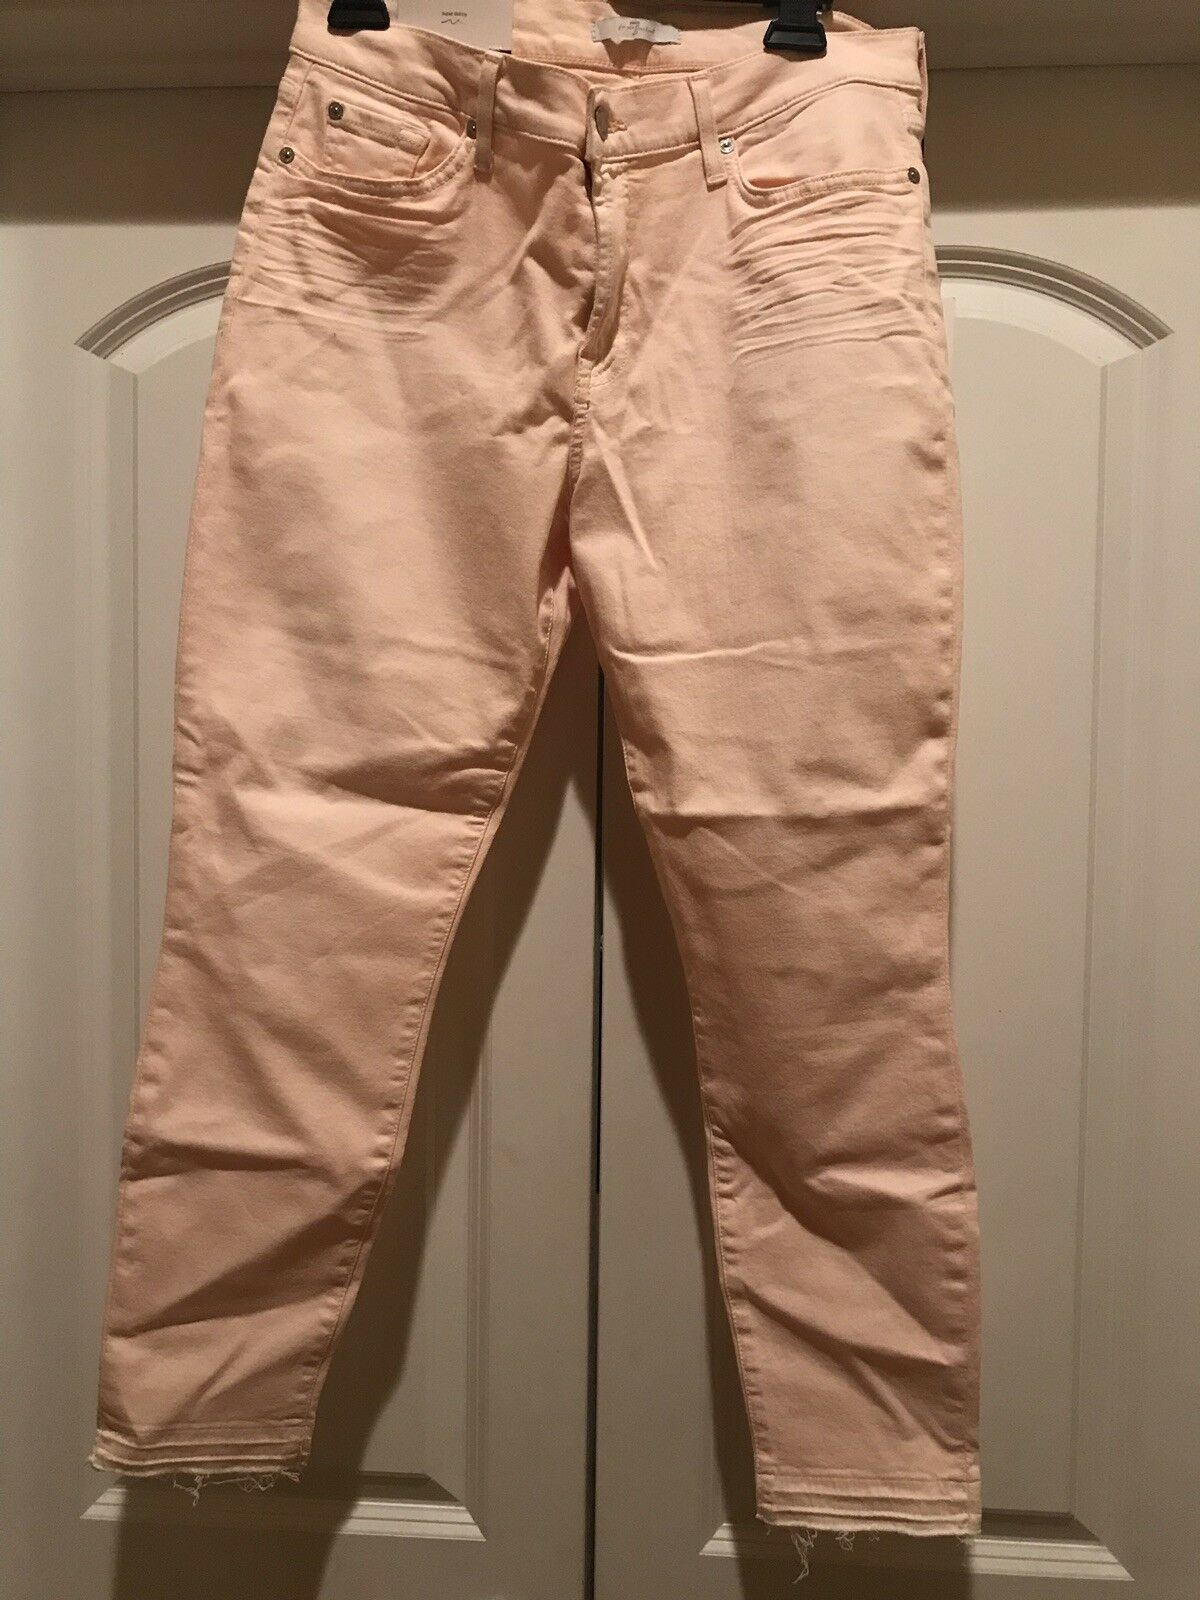 Women's Peach 7 For All Mankind Ankle Skinny Jeans Size 32